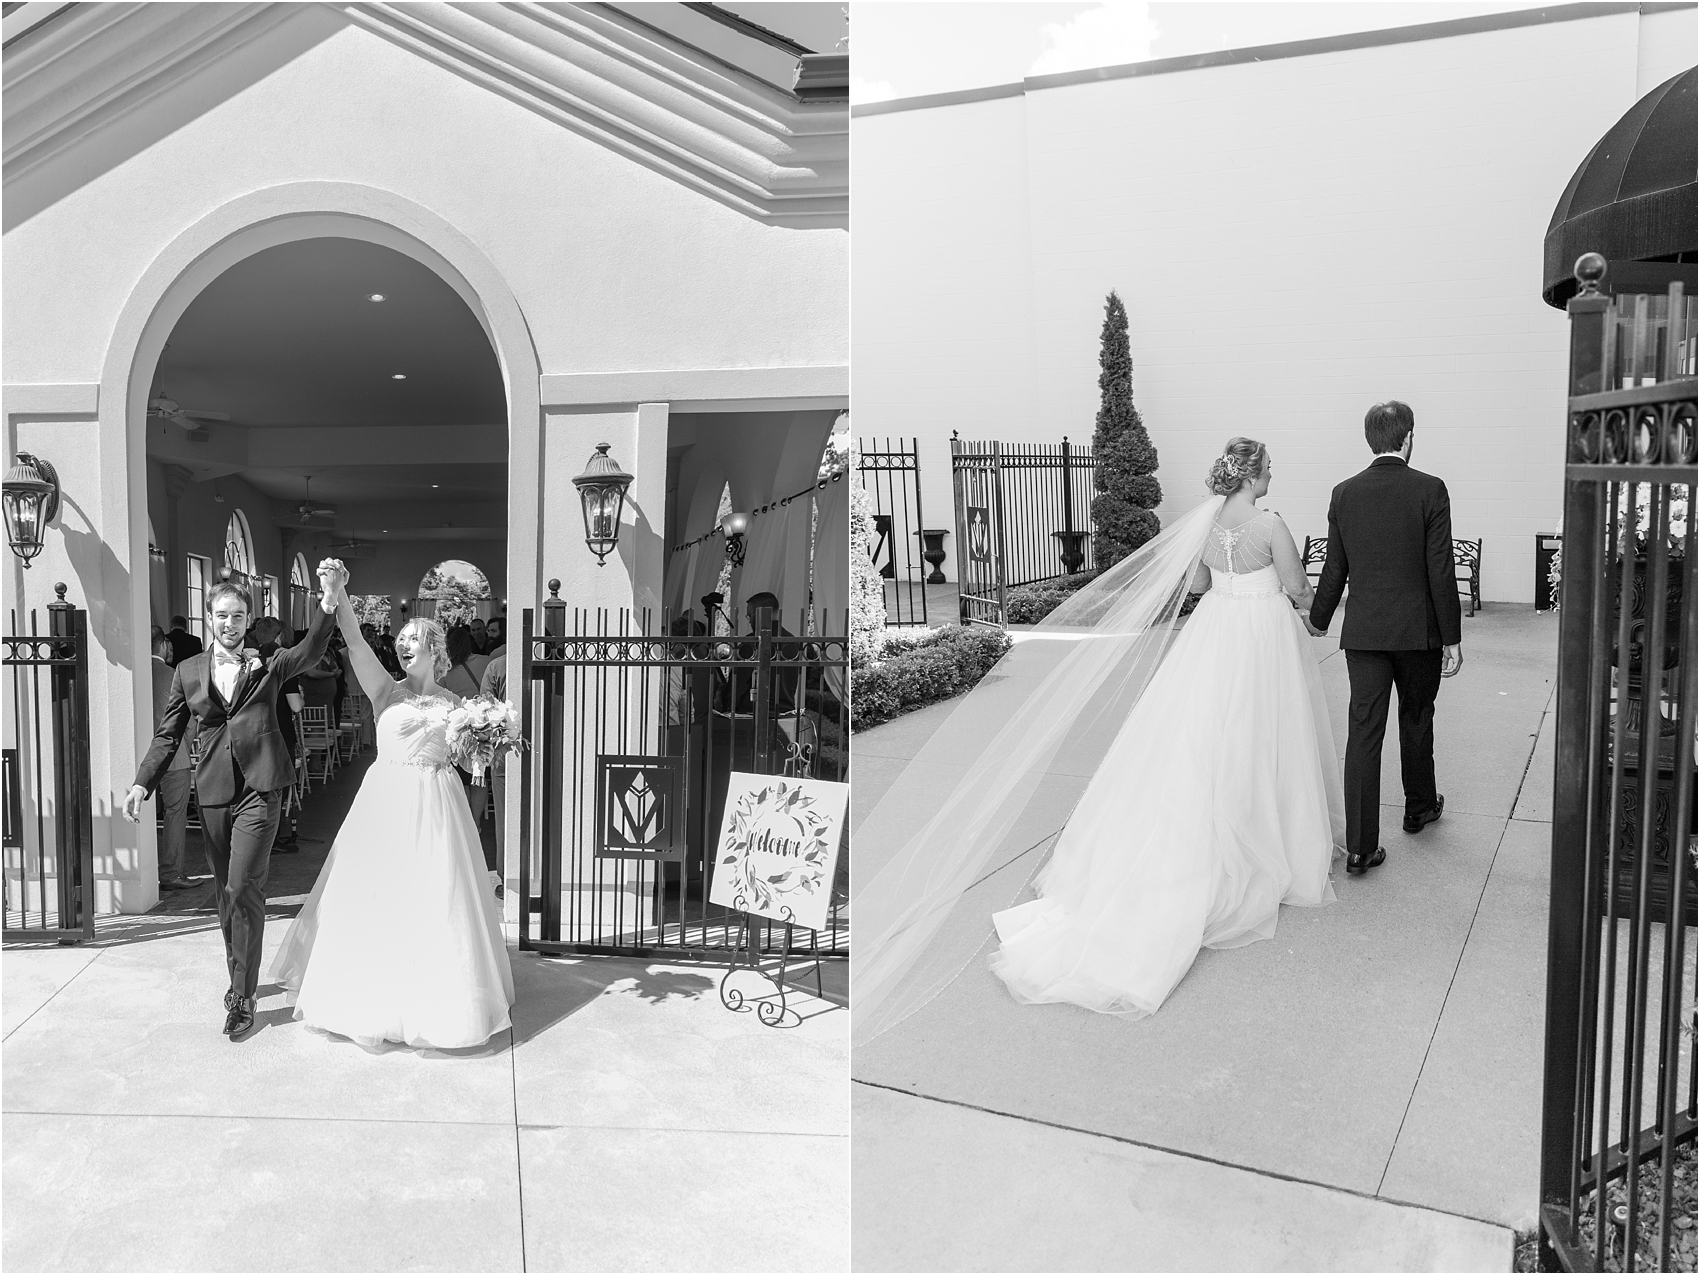 lord-of-the-rings-inspired-wedding-photos-at-crystal-gardens-in-howell-mi-by-courtney-carolyn-photography_0053.jpg